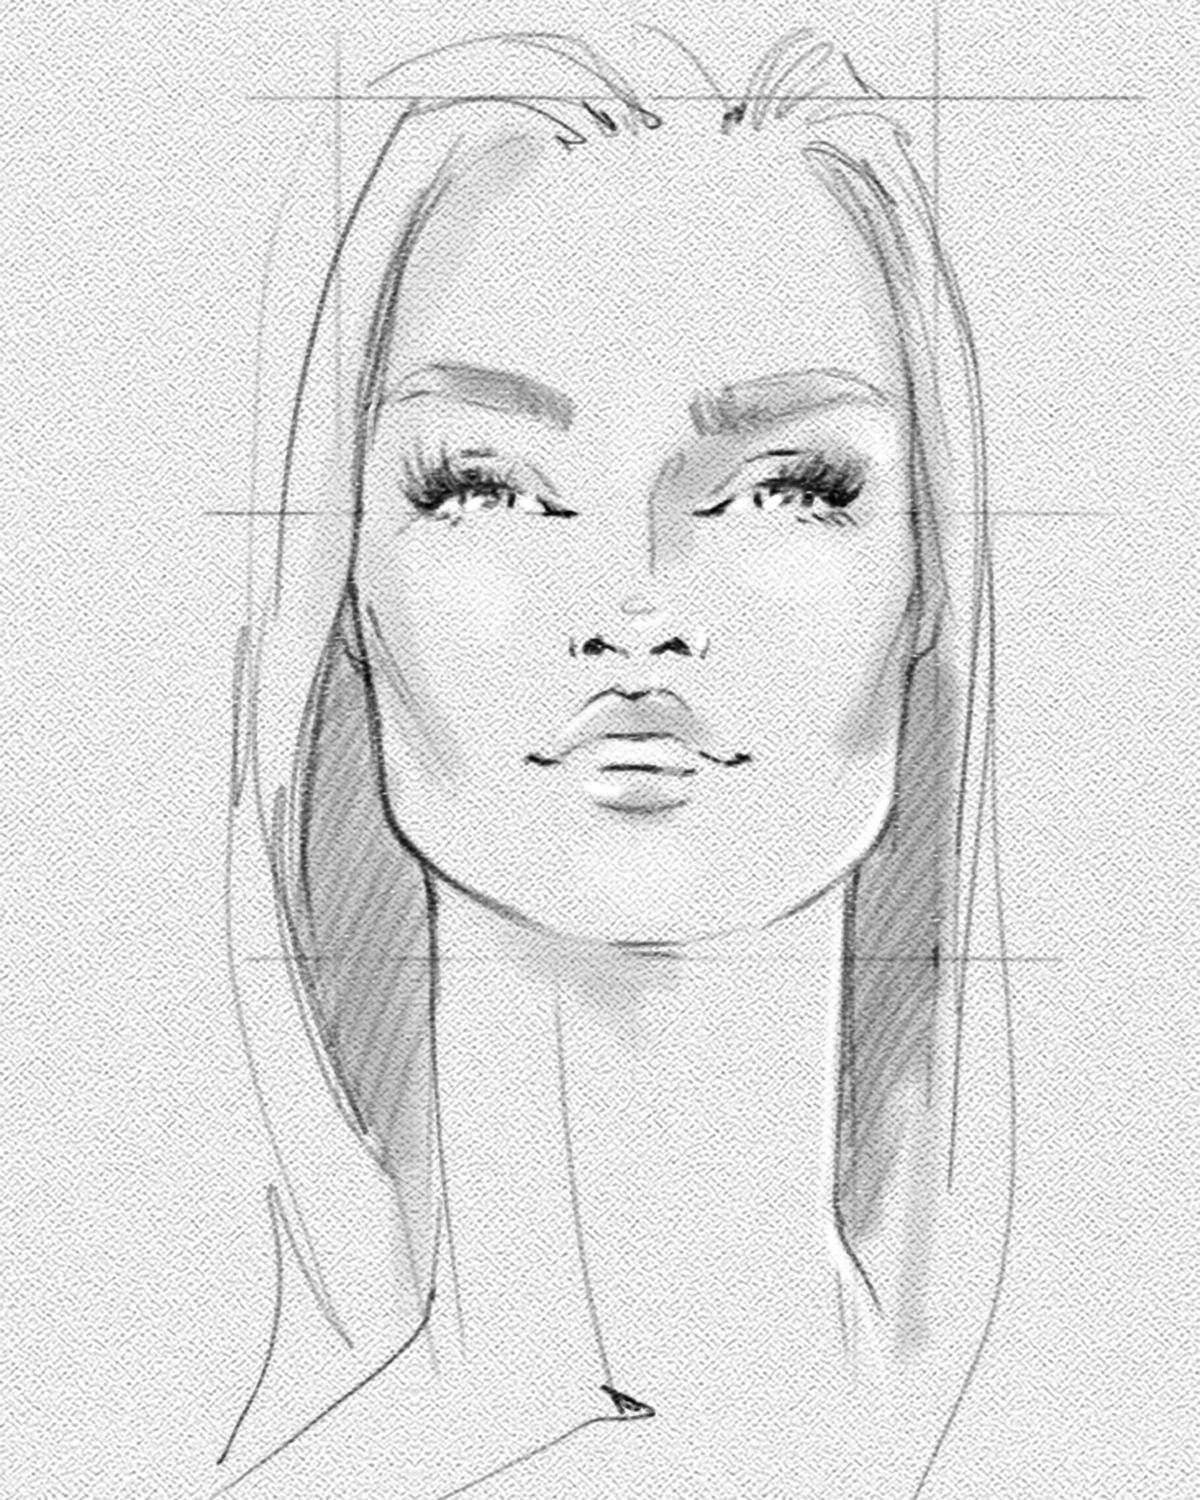 Fashion Face Study Illustrated By Julija Lubgane Fashion Illustration Sketches Face Fashion Illustration Face Fashion Illustrations Techniques